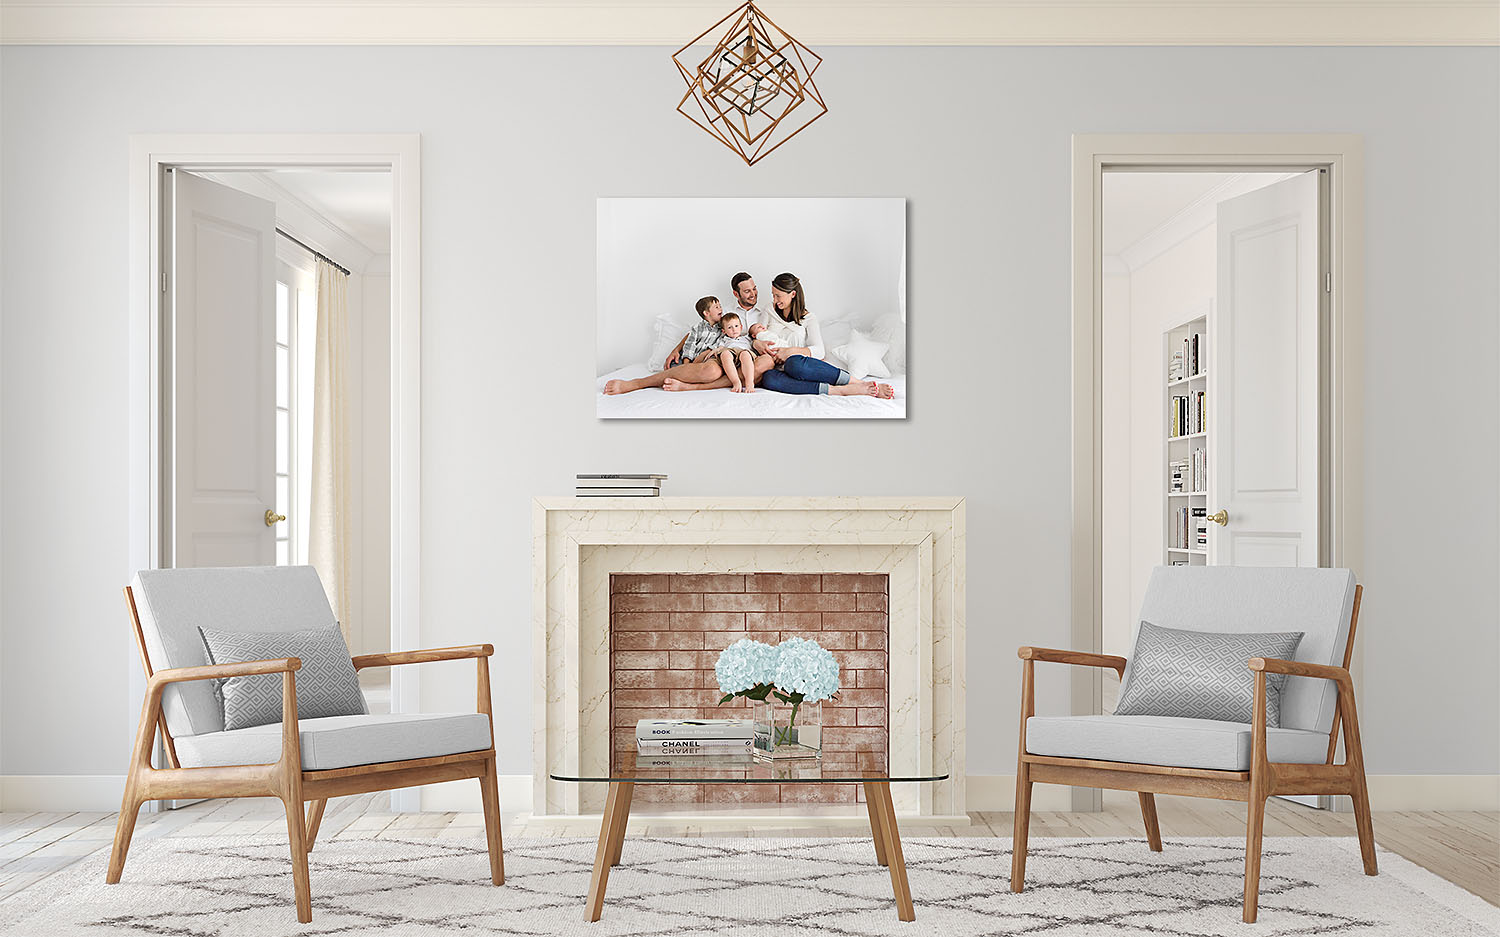 fireplace_Modern-Romance copy.jpg